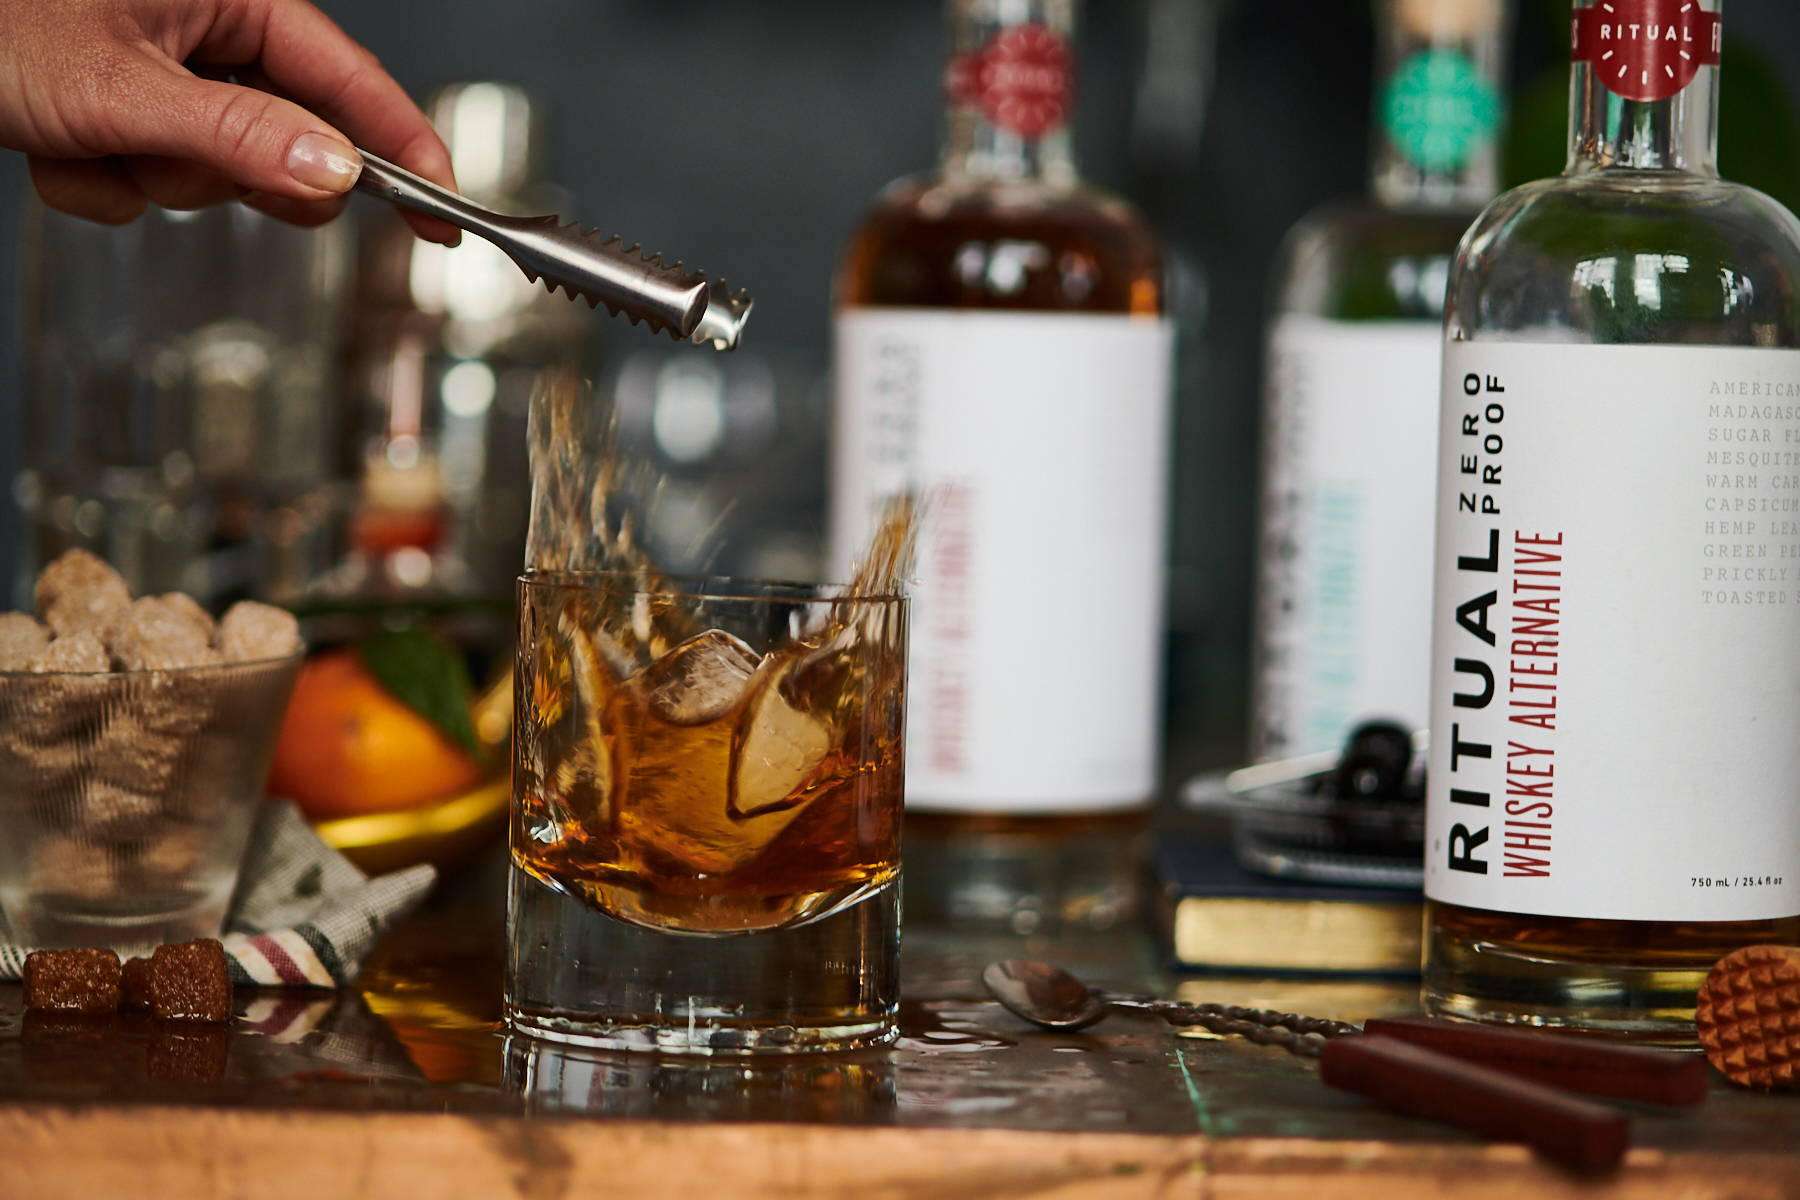 An ice cube dropping into a glass of Ritual spirit-free whiskey alternative, creating a splash, with bar accessories nearby.